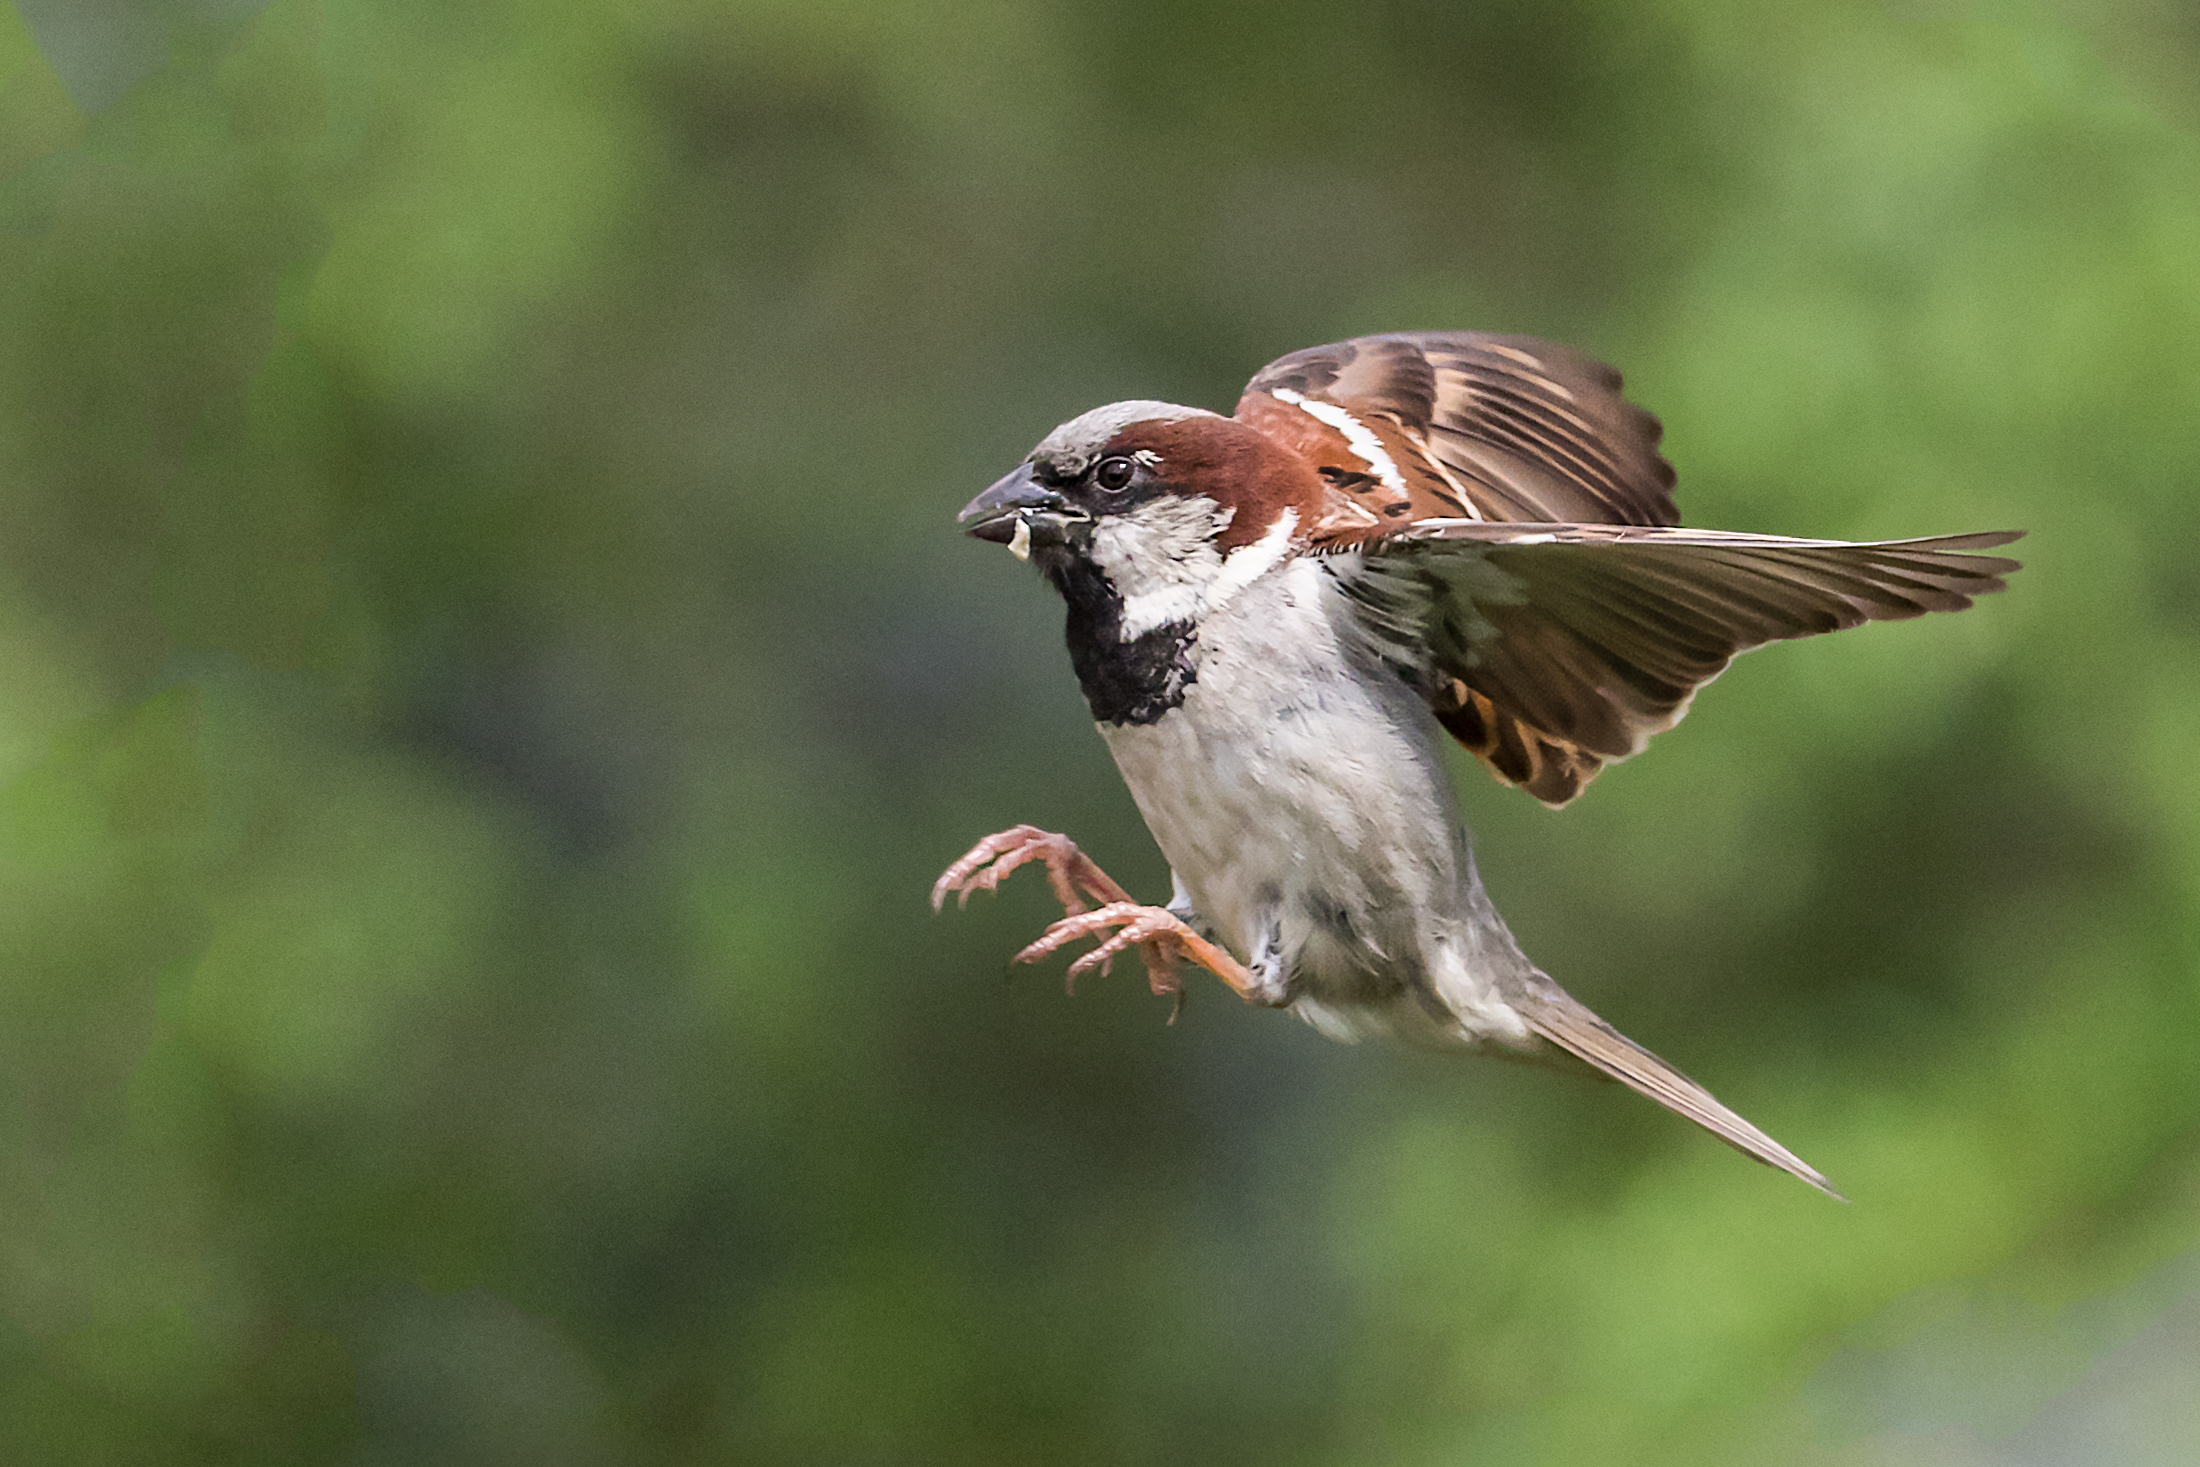 Male Sparrow in a hurry!